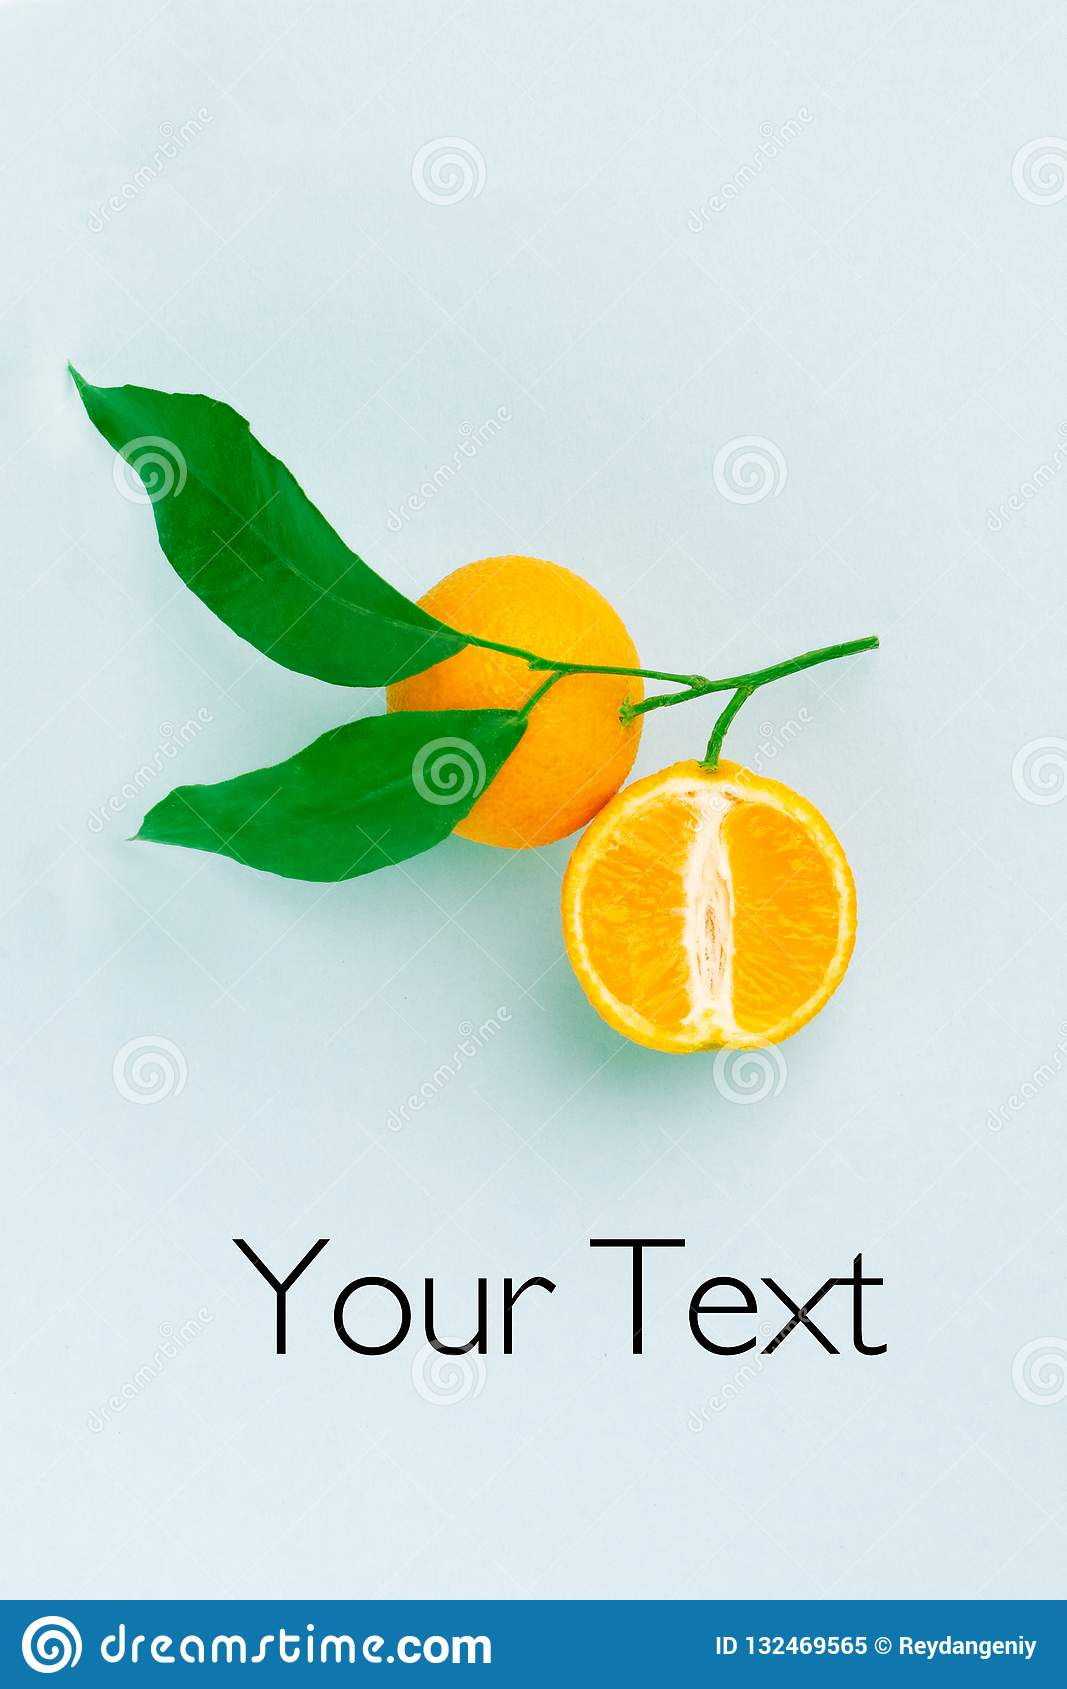 Creative fruit layout: orange branch with yellow oranges